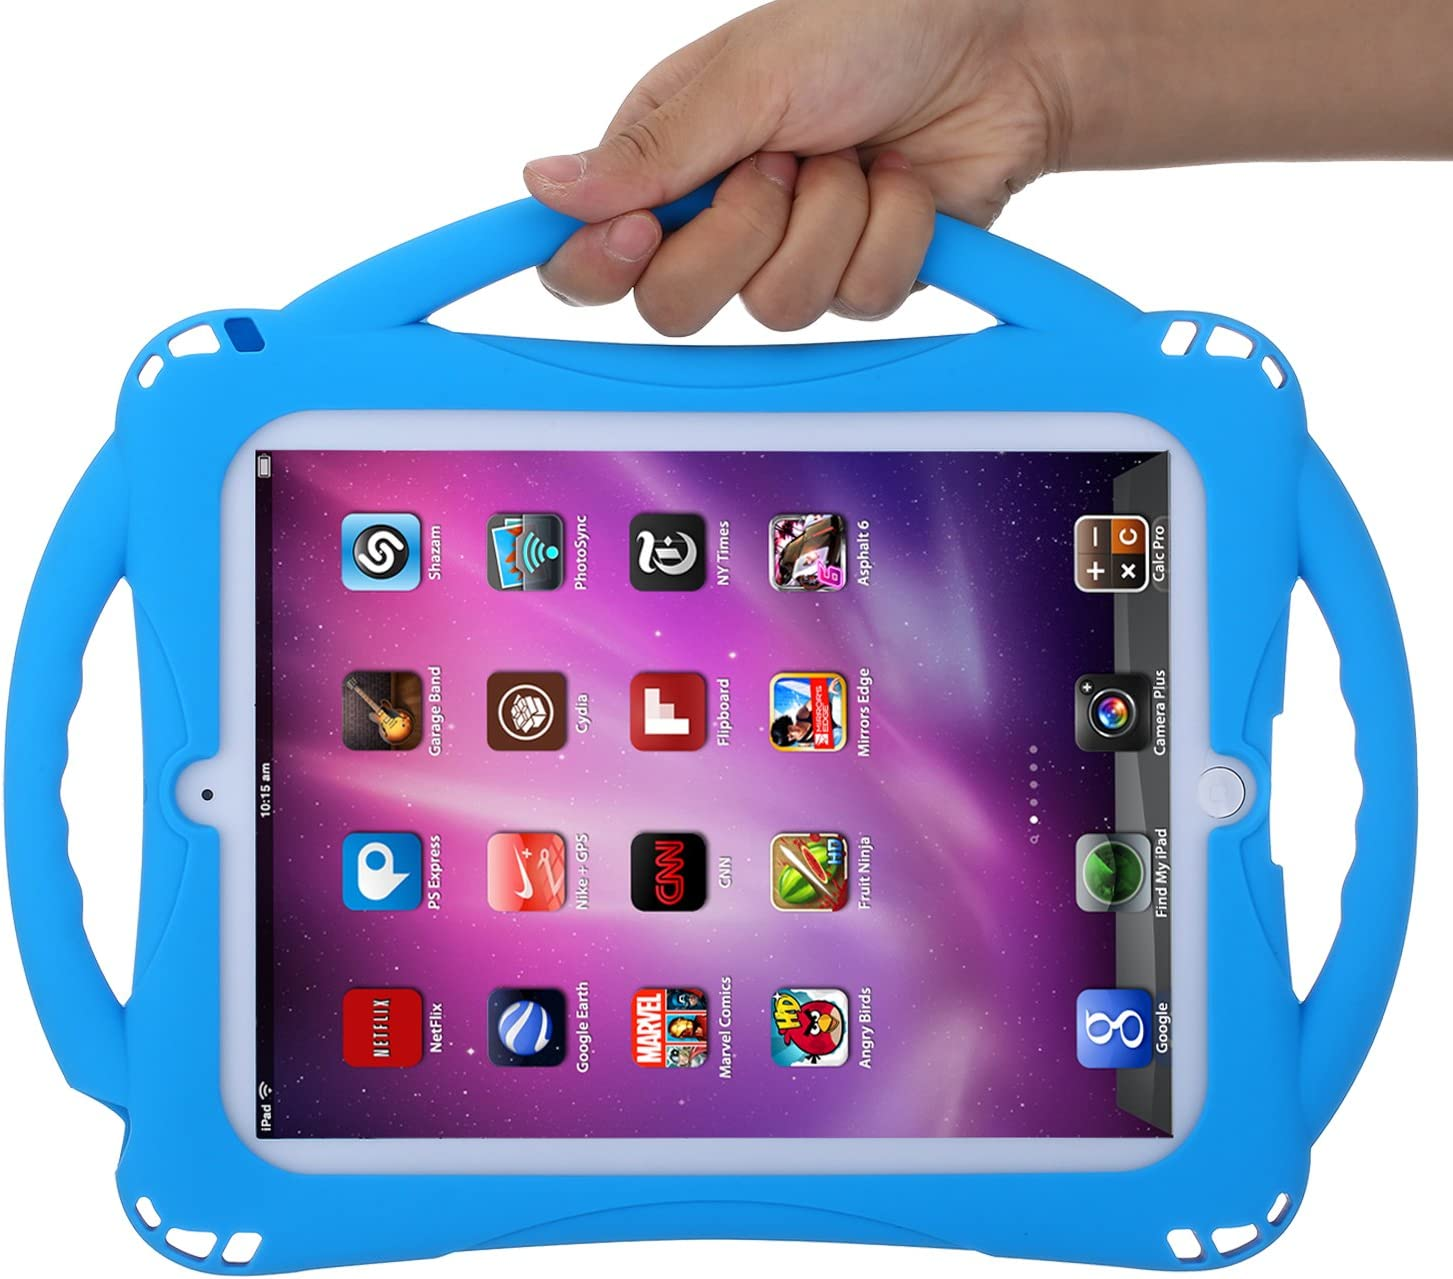 iPad 2//3//4, Pink iPad 2 Case For Kids,TopEsct Shockproof Silicone Handle Stand Case Cover For Apple iPad 2,iPad 3,iPad 4